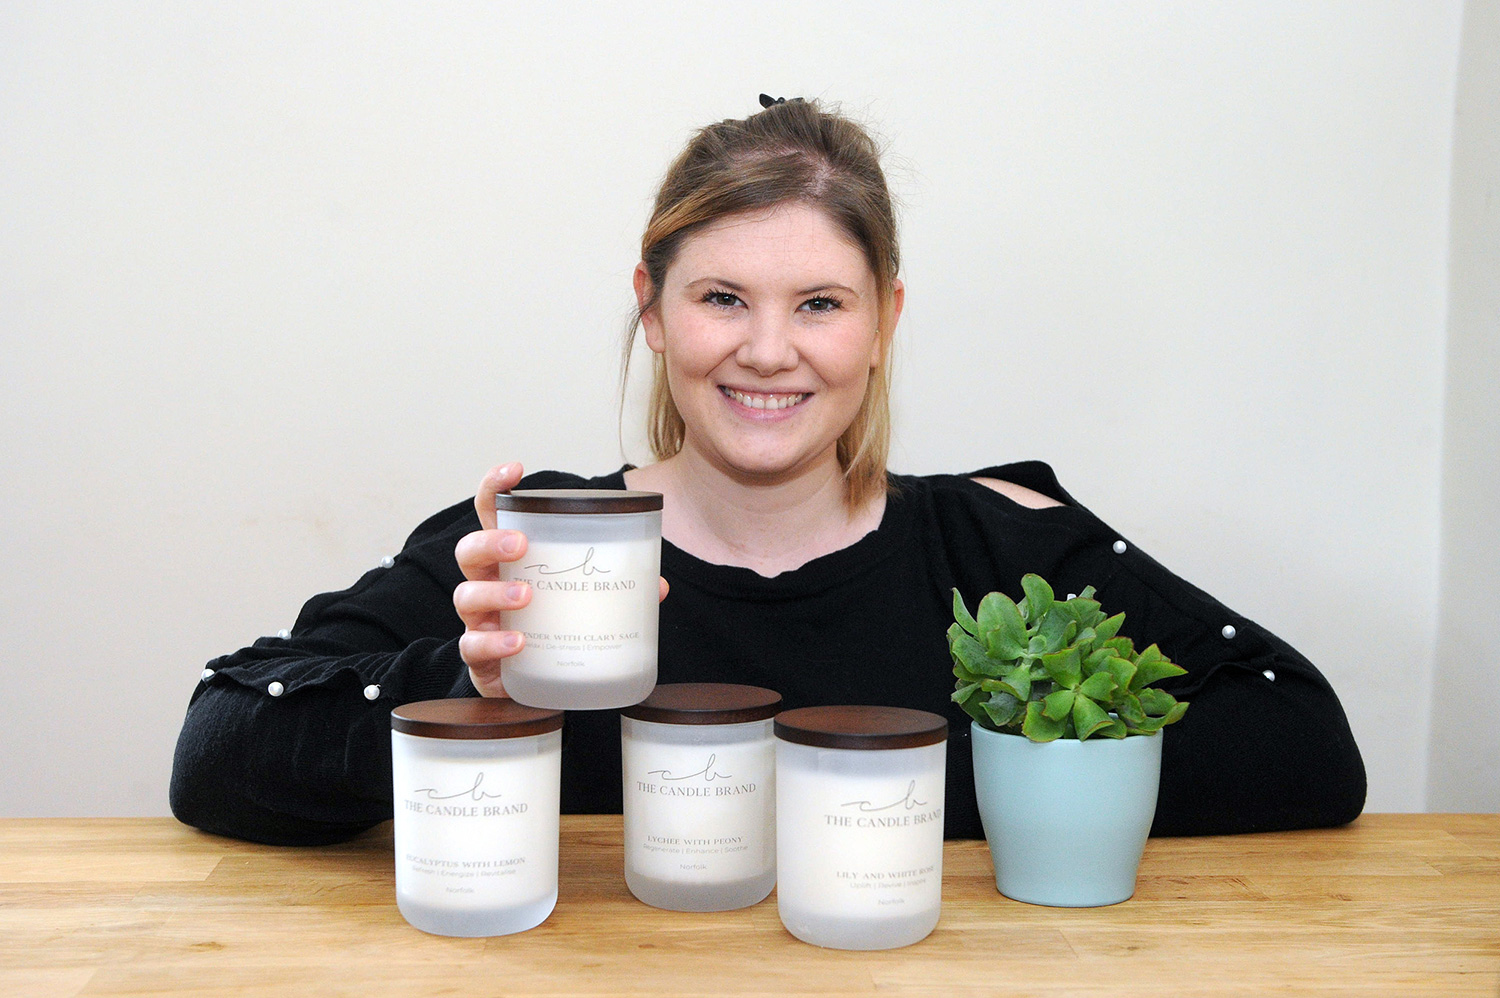 Christina Brand of The Candle Brand.